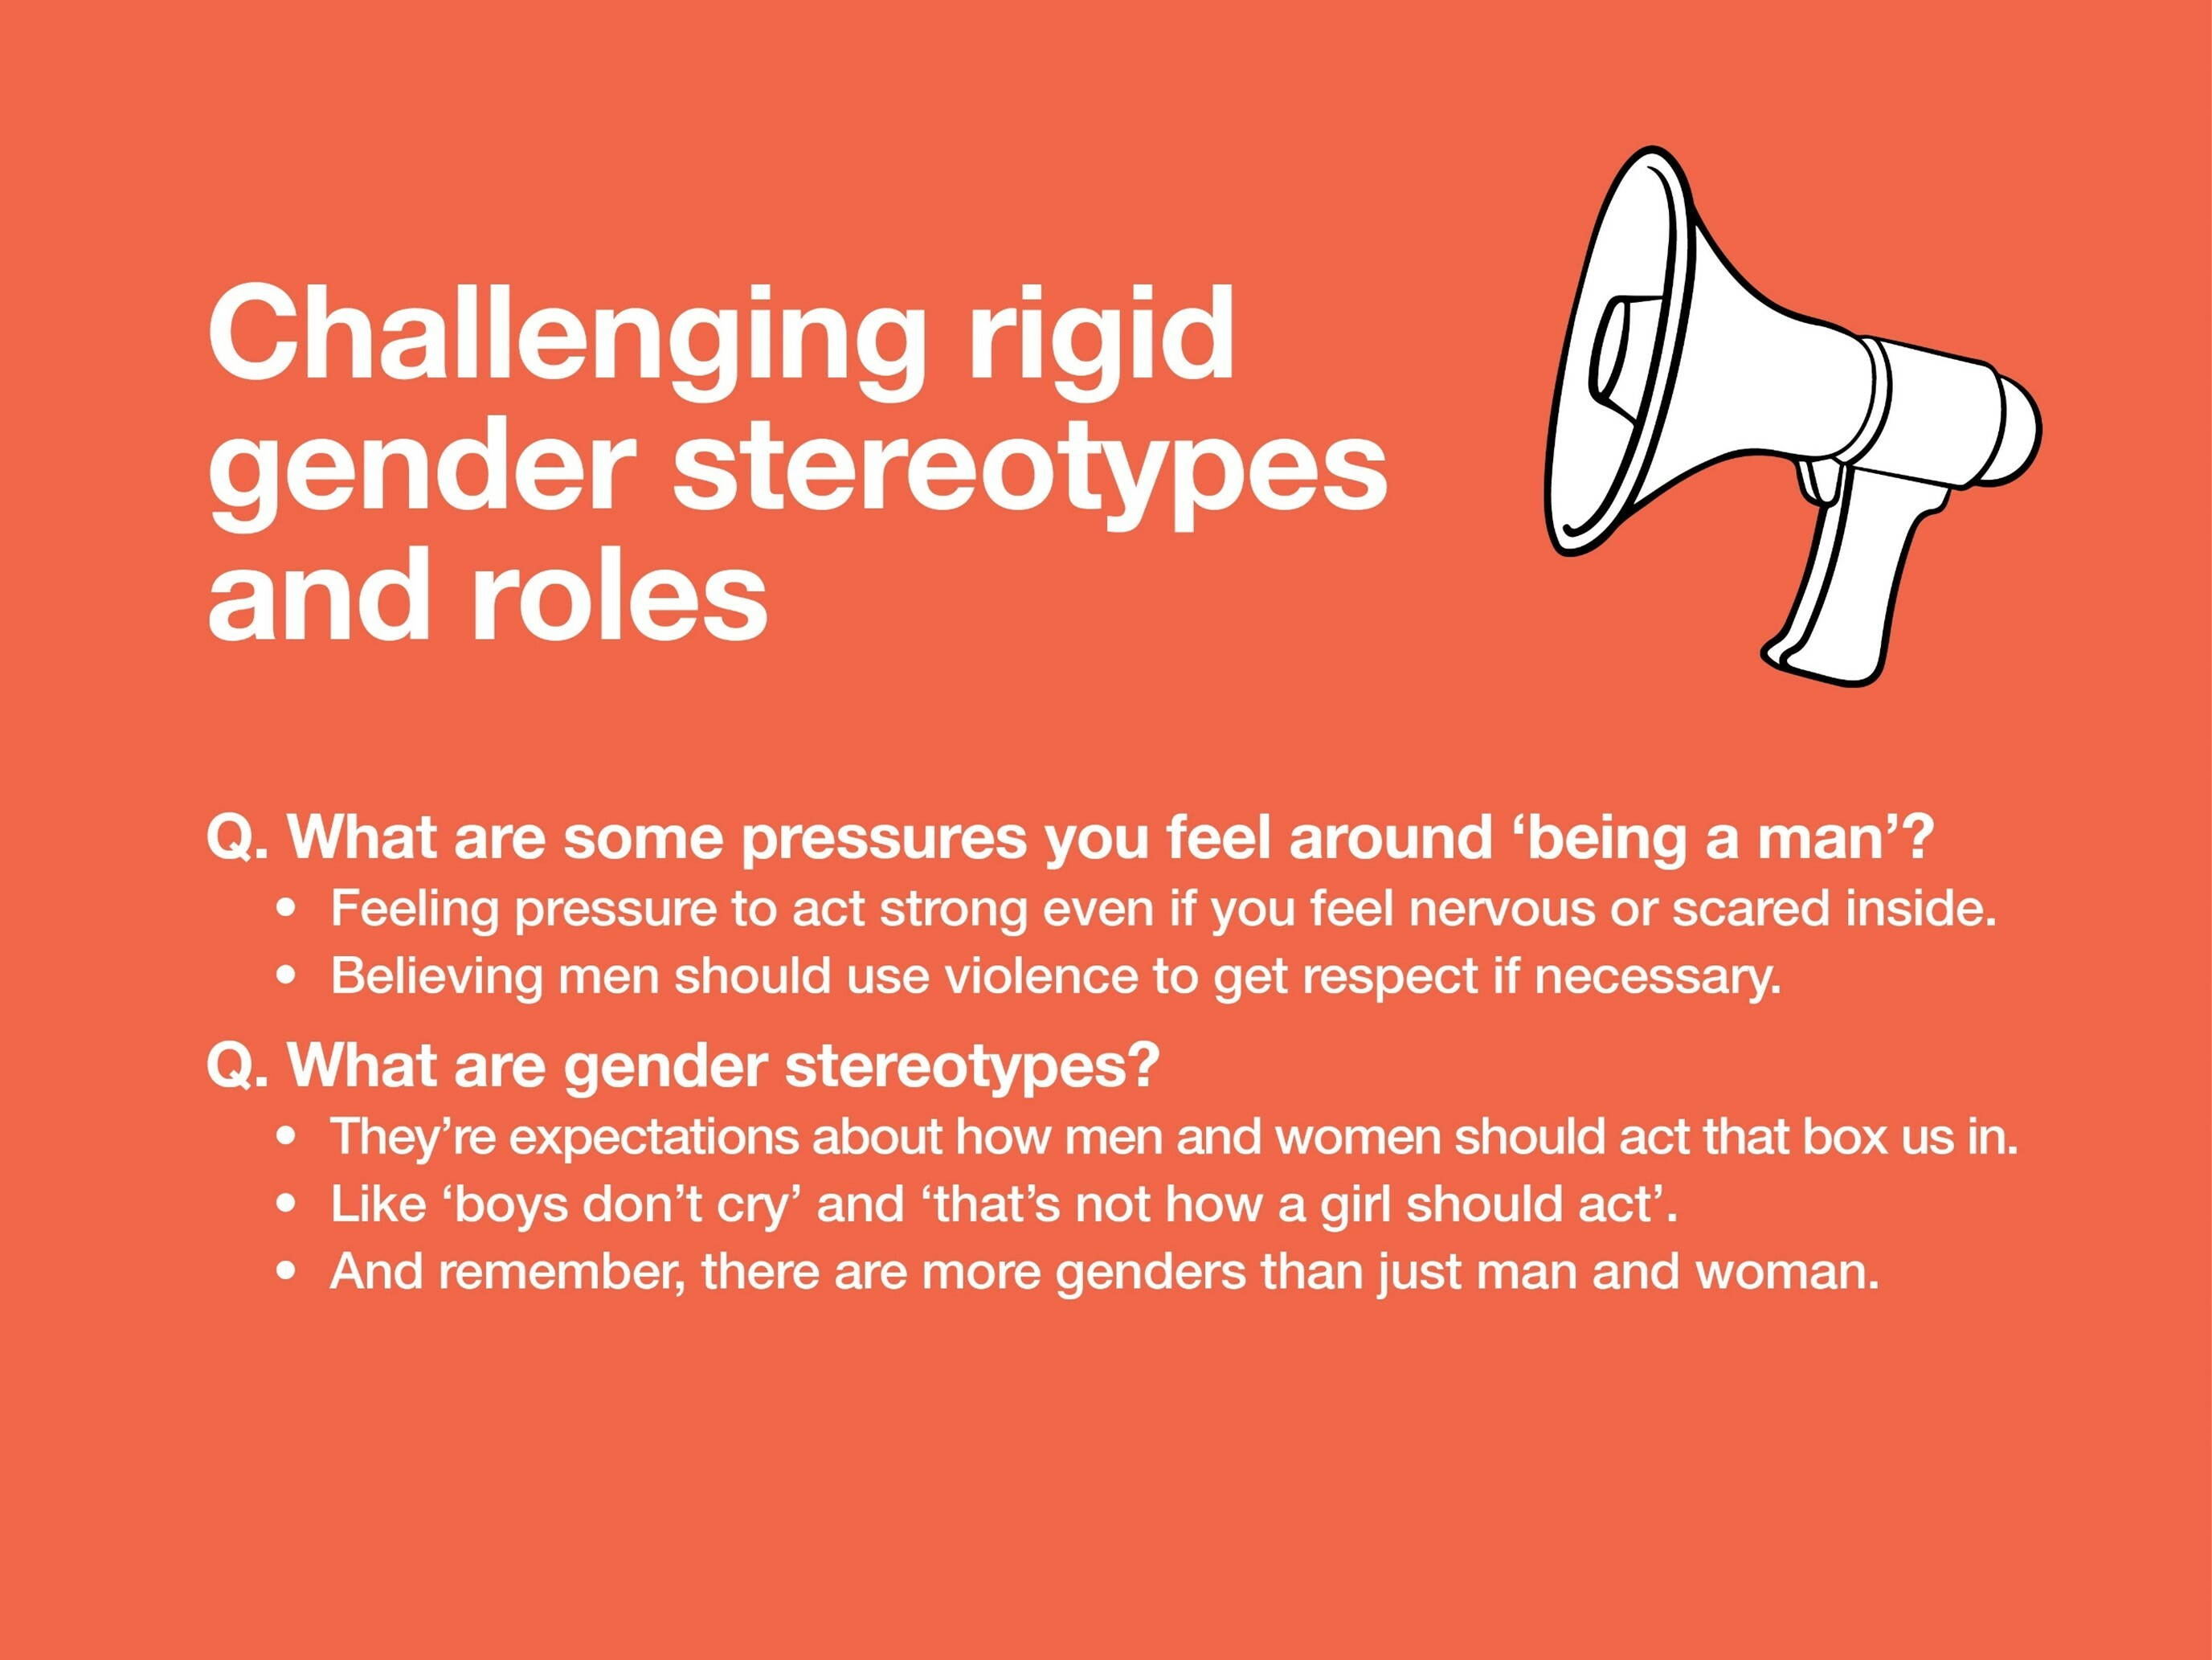 An infographic that covers questions and answers about Challenging rigid gender stereotypes and roles.